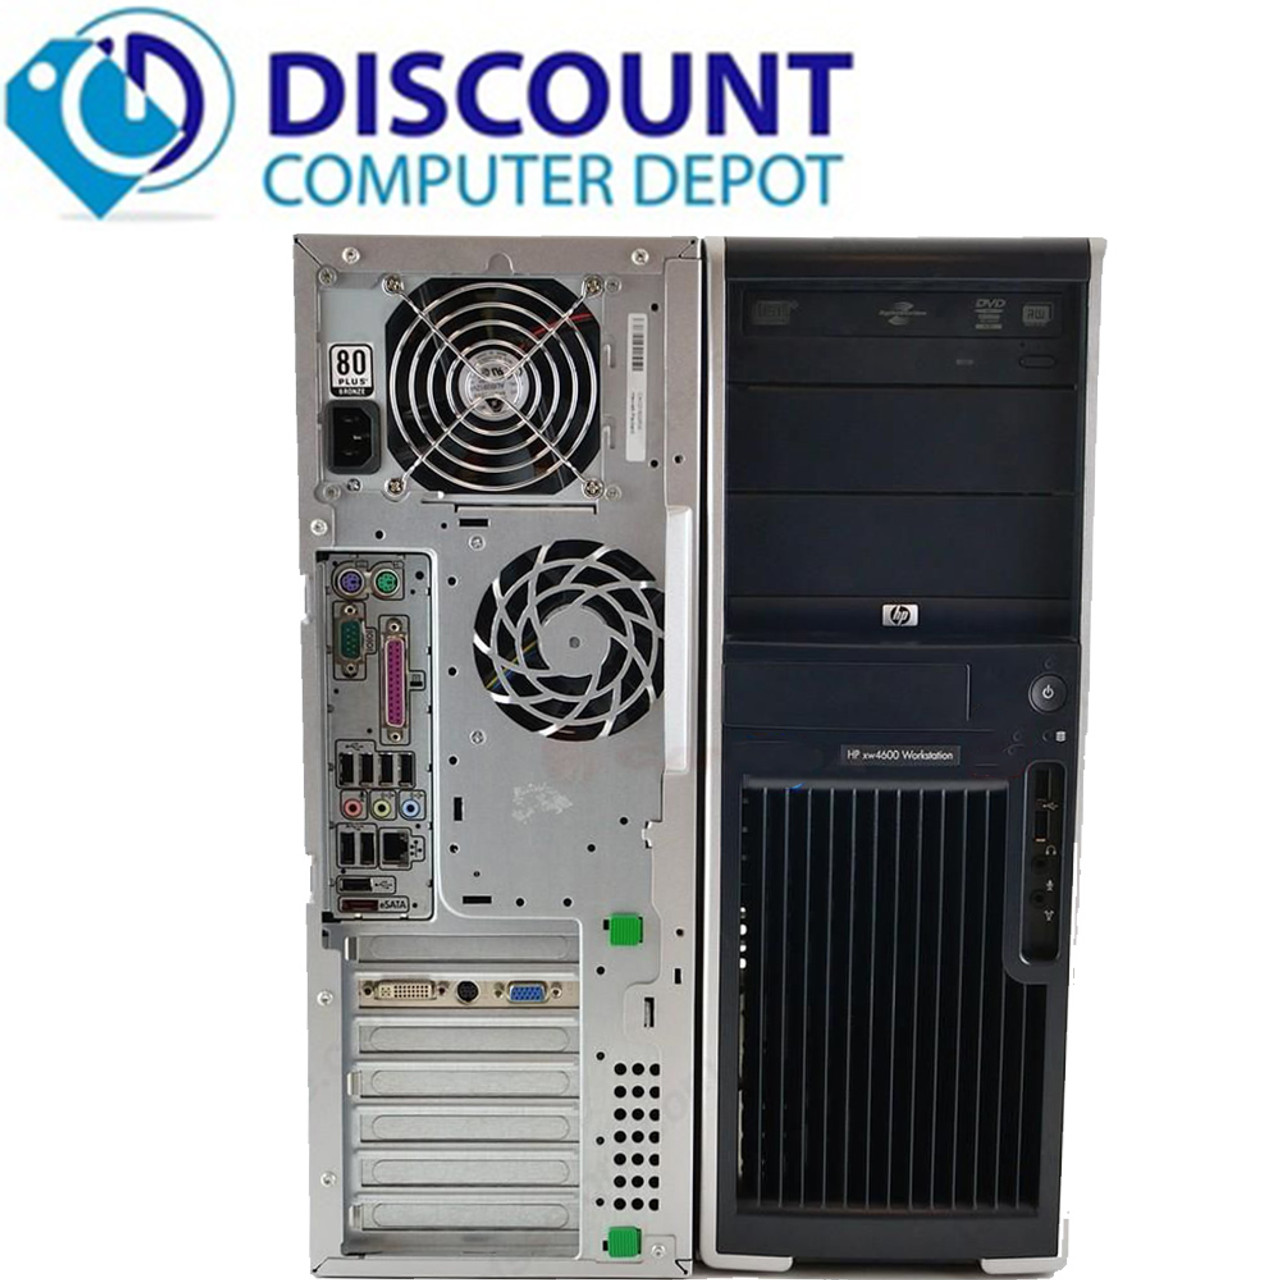 HP XW4600 WORKSTATION DRIVER FOR WINDOWS